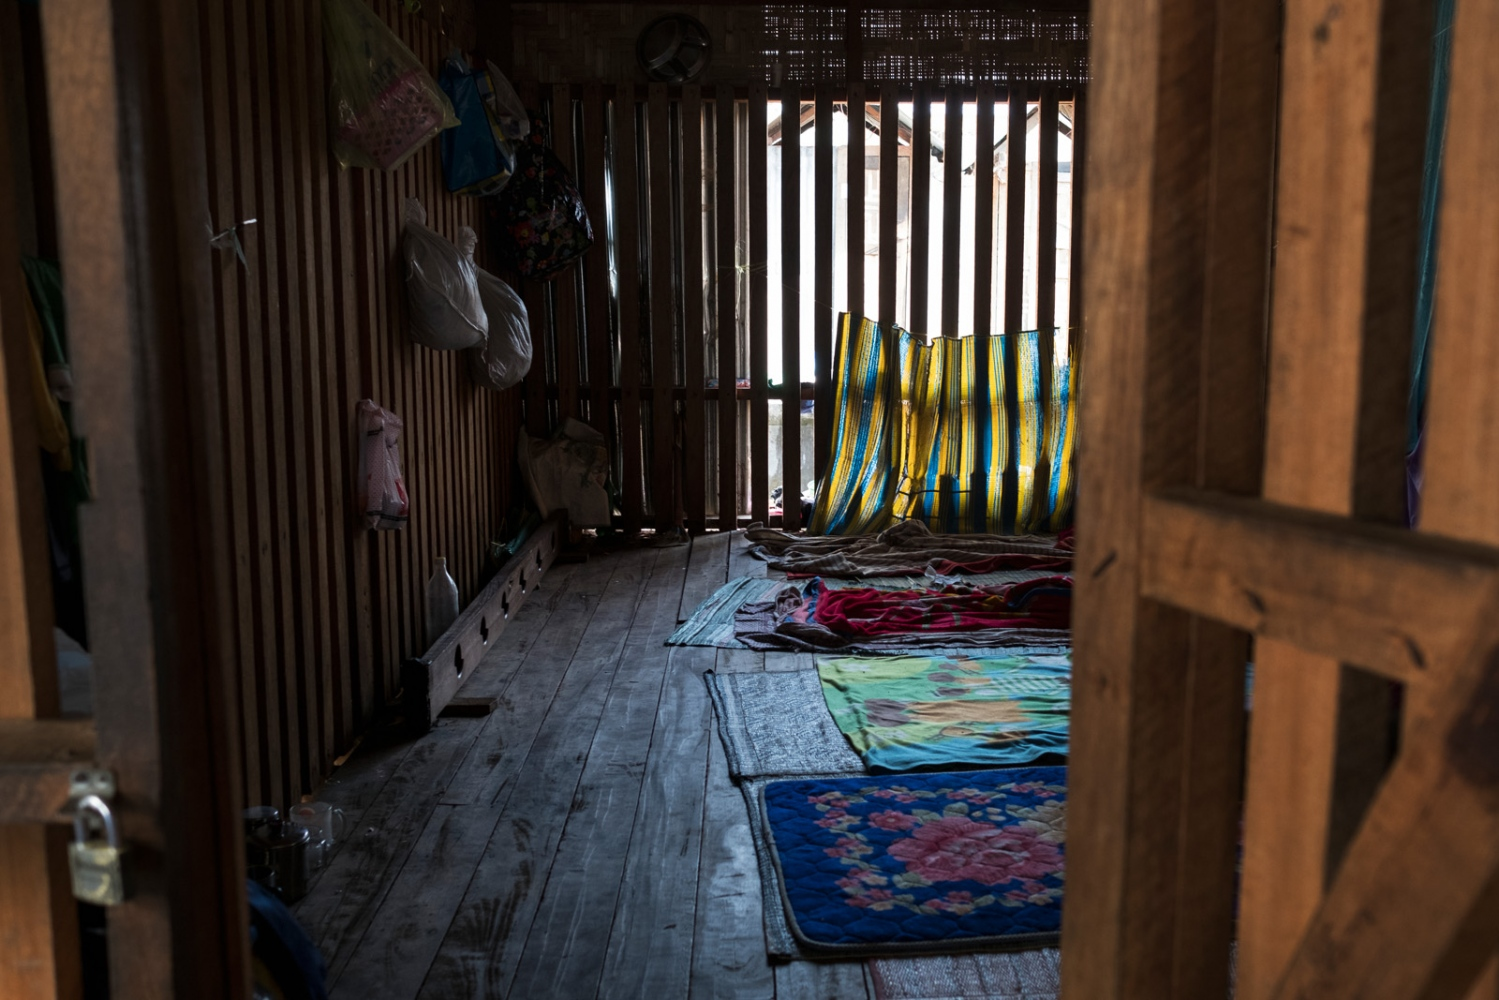 A look into a cage where new clients are put their first week of treatment at one of Pat Jasans drug rehabilitation centers in Myitkyina, Kachin state, Myanmar.